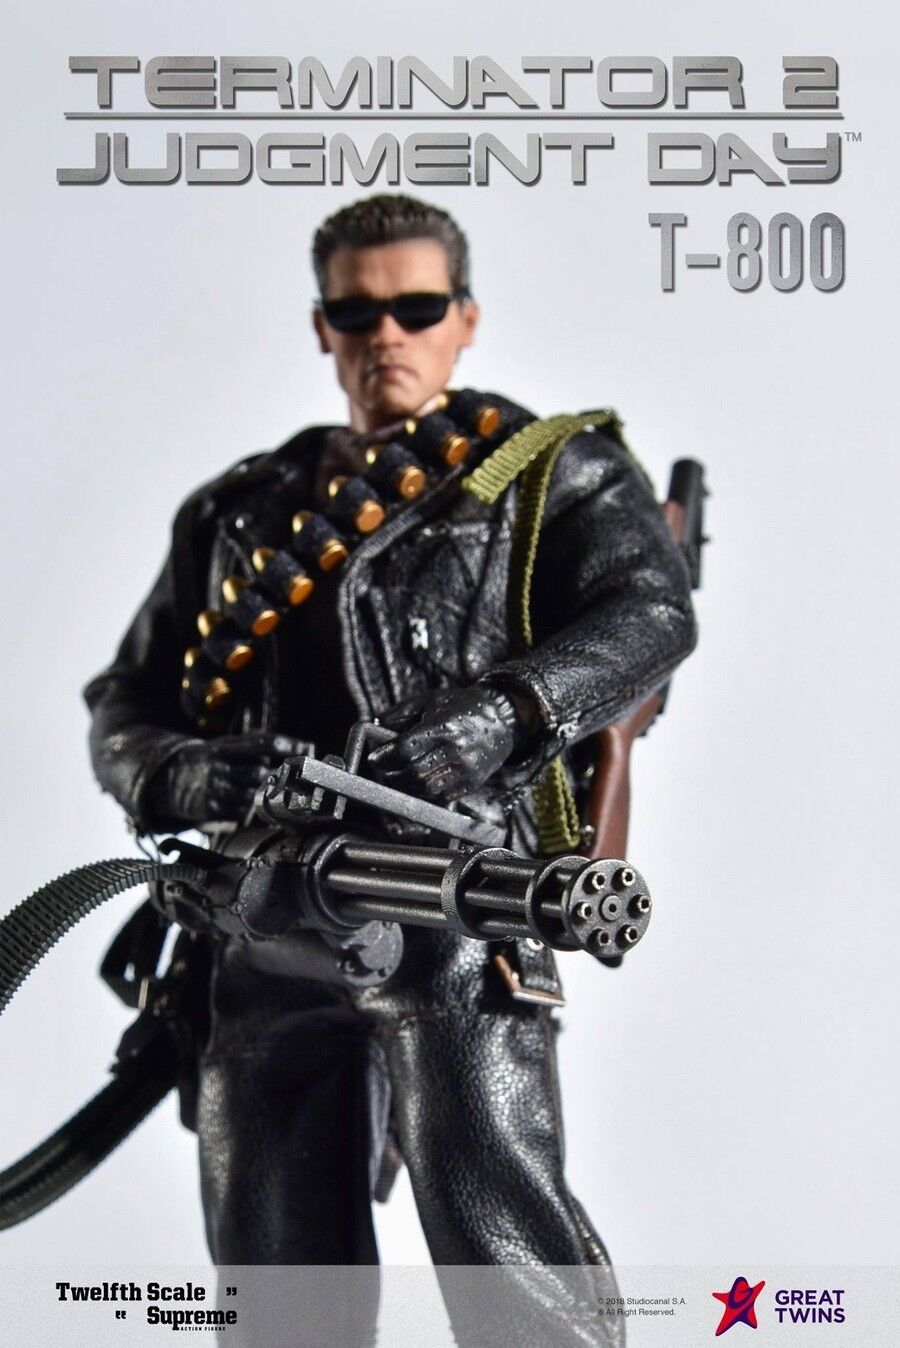 Great Twins 1 12 Terminator 2 Judgement Day T-800 Arnold PVC Action Figure New